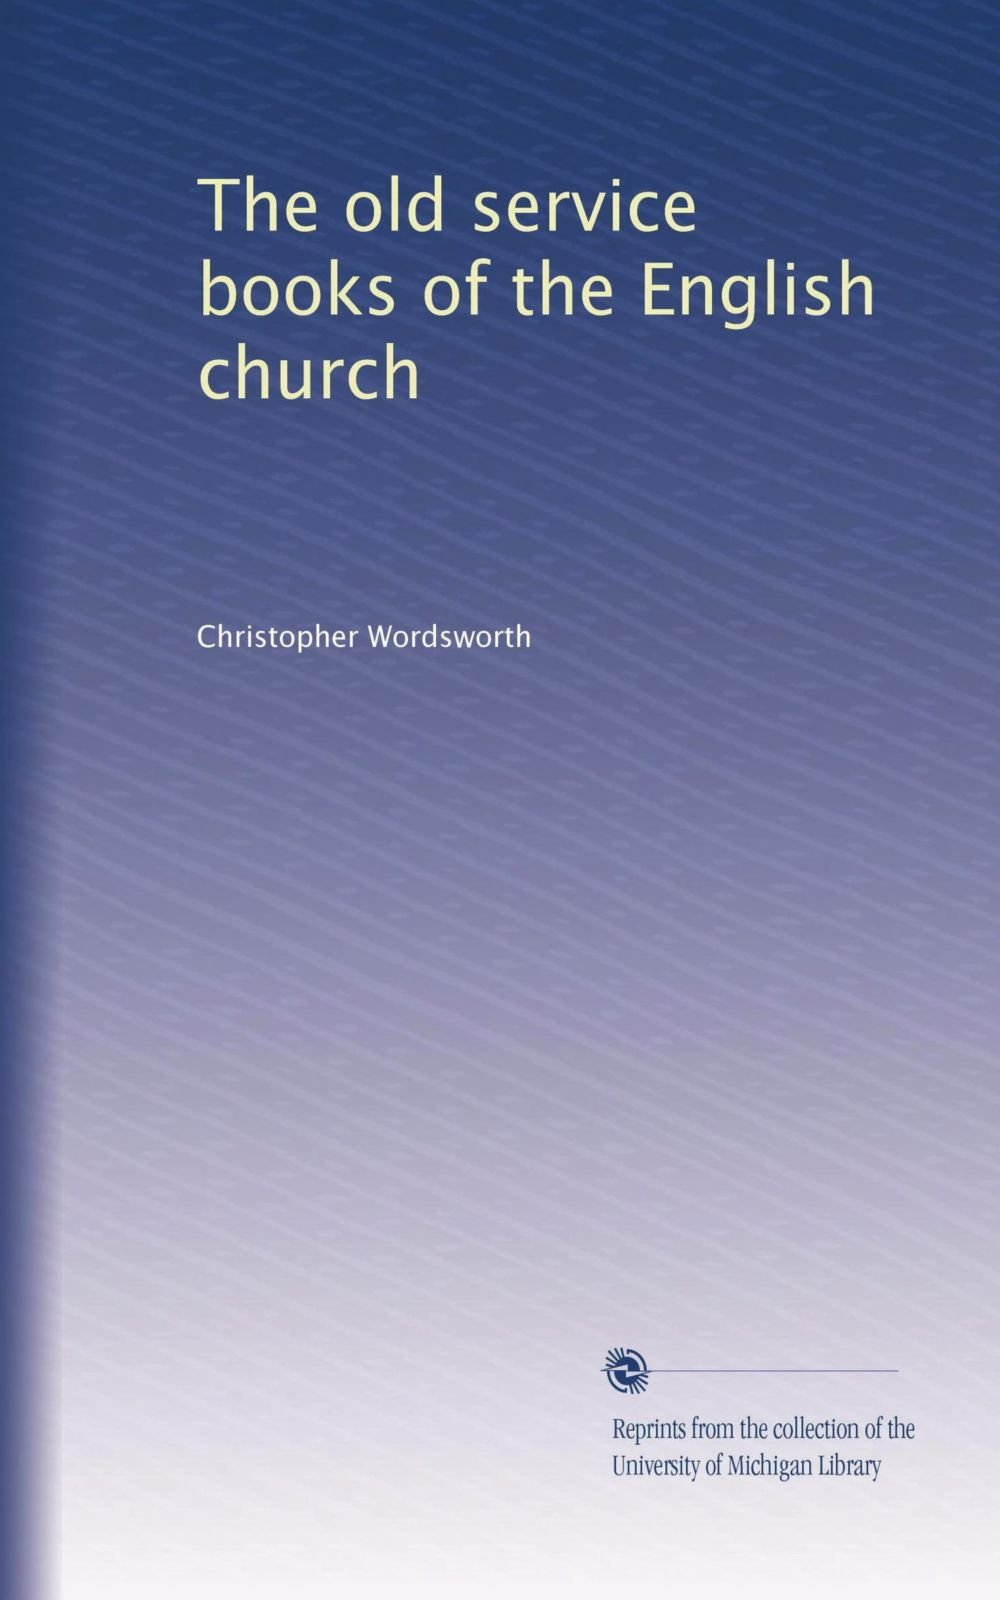 The old service books of the English church pdf